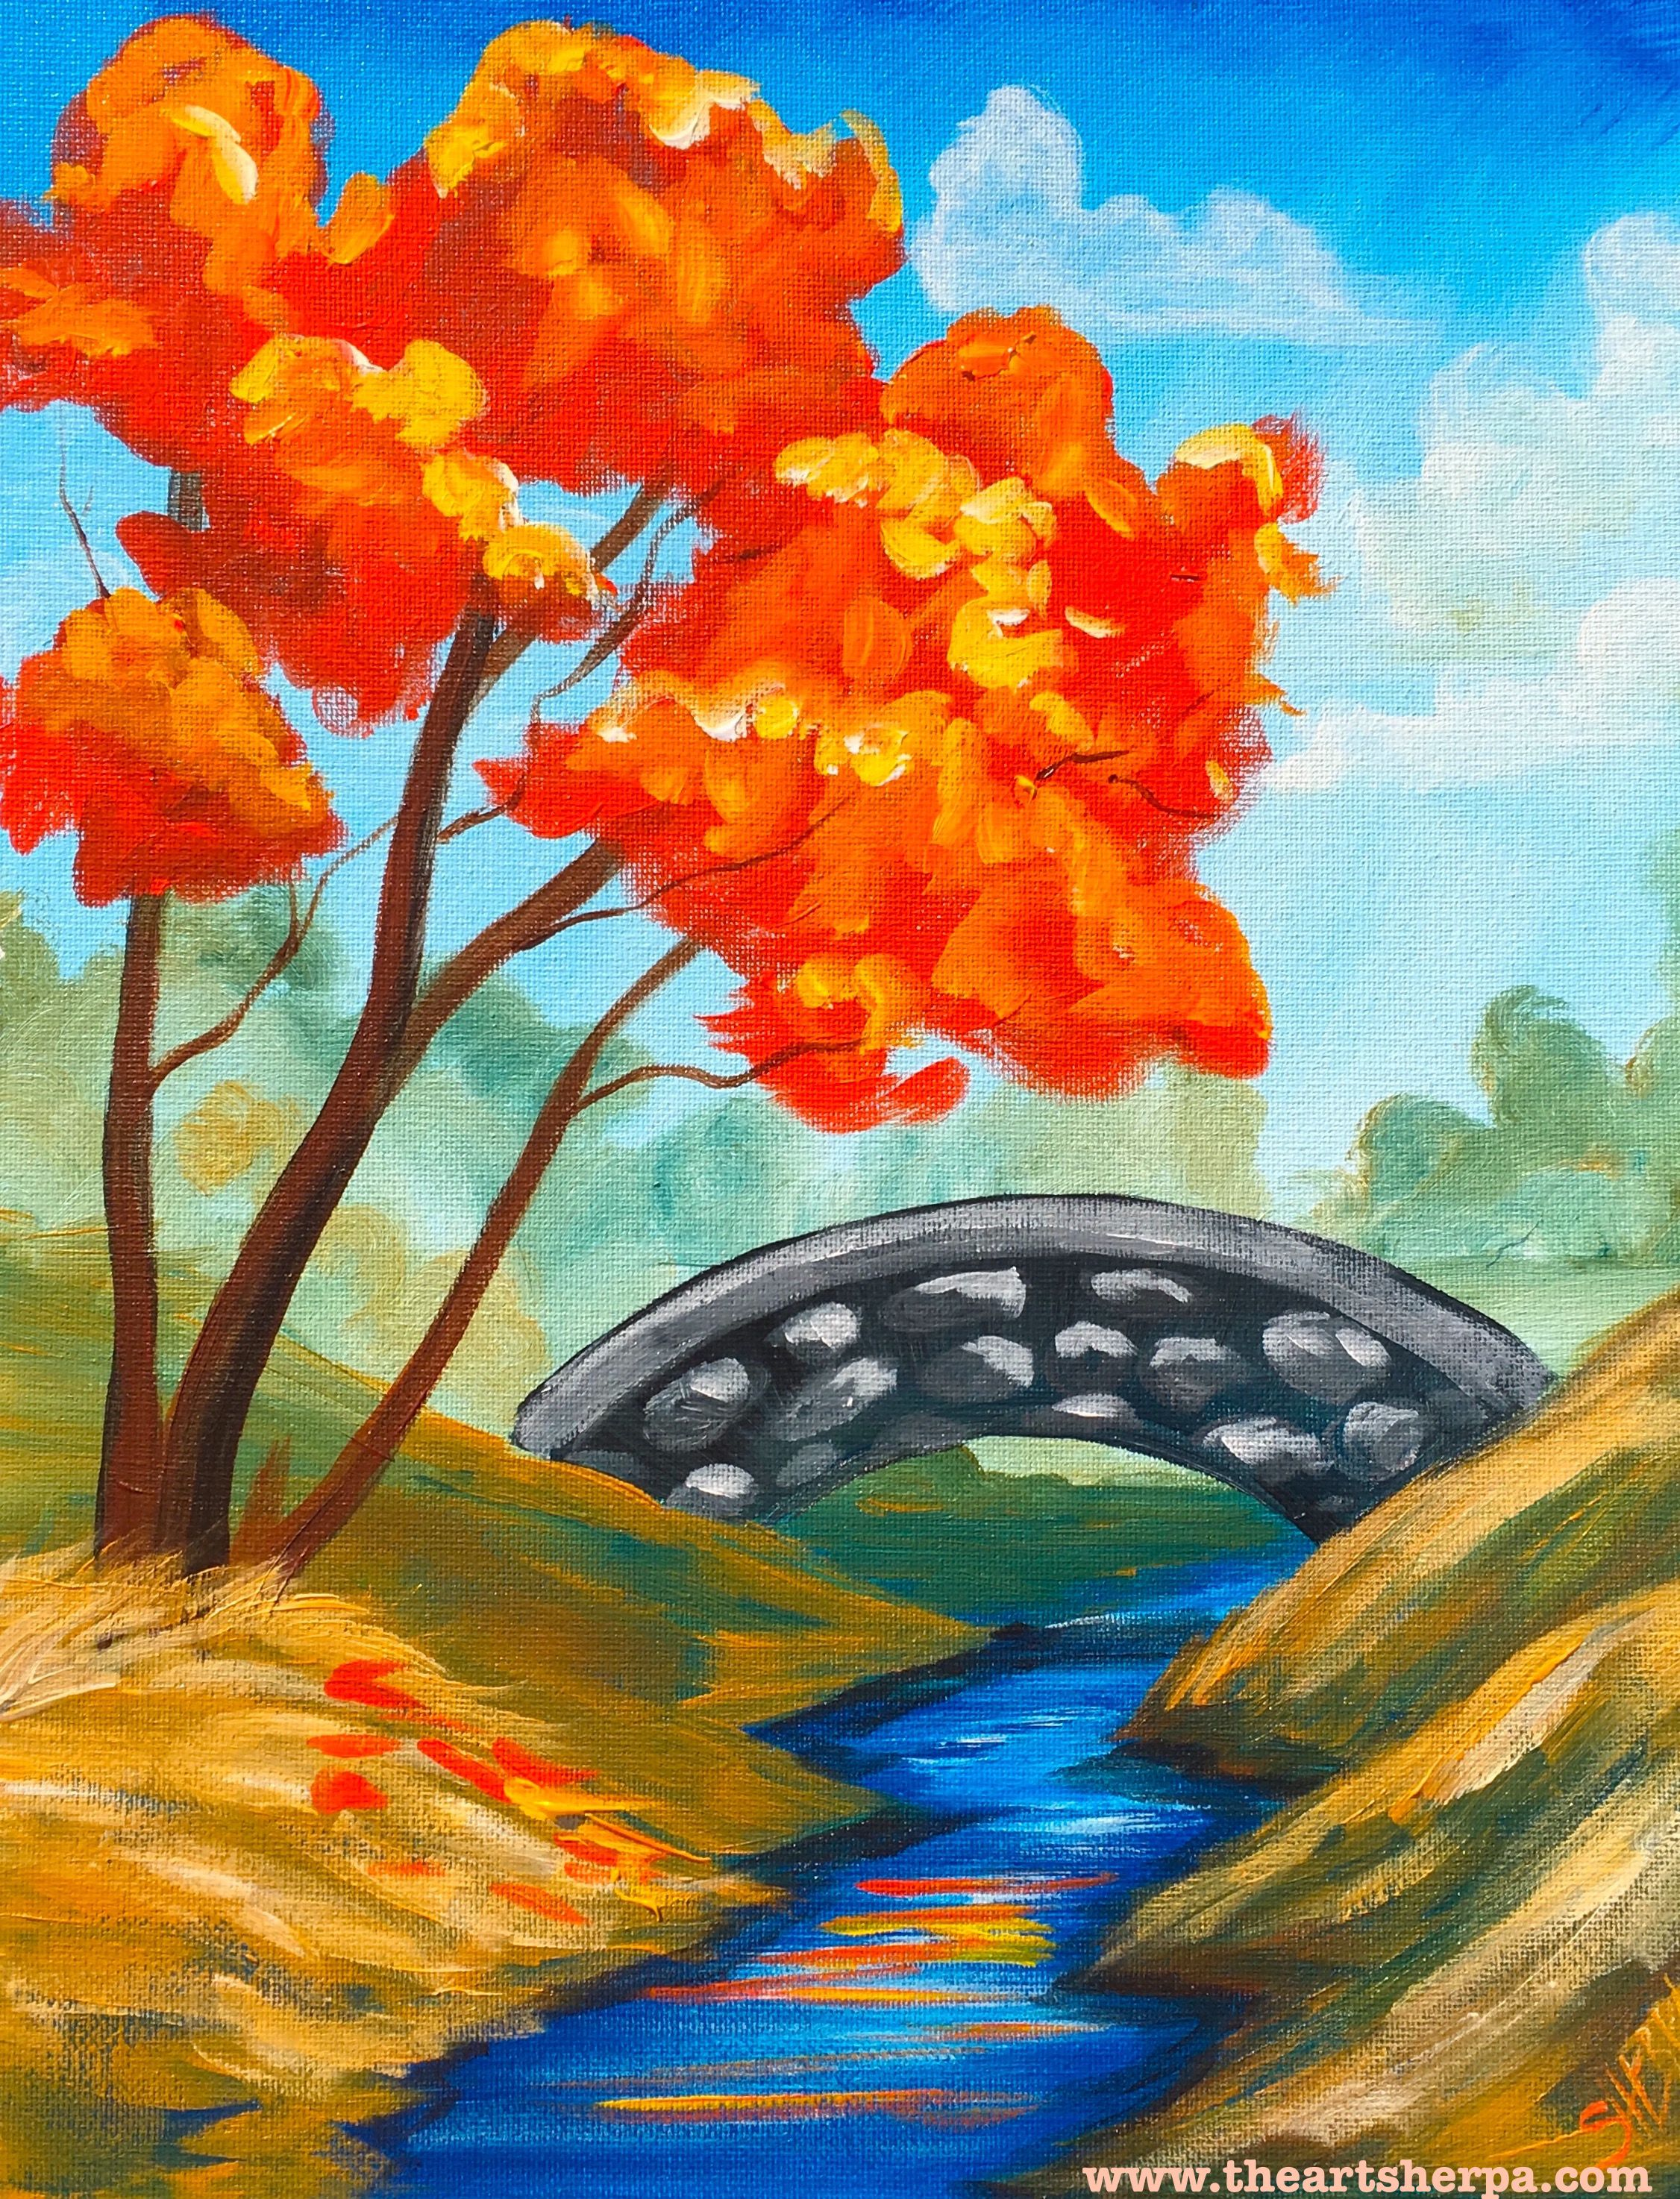 Fall Landscape With Stream And Stone Bridge In Acrylic Paint On Canvas Full Real Time LIVE Tutorial Simple Materials A VERY EASY